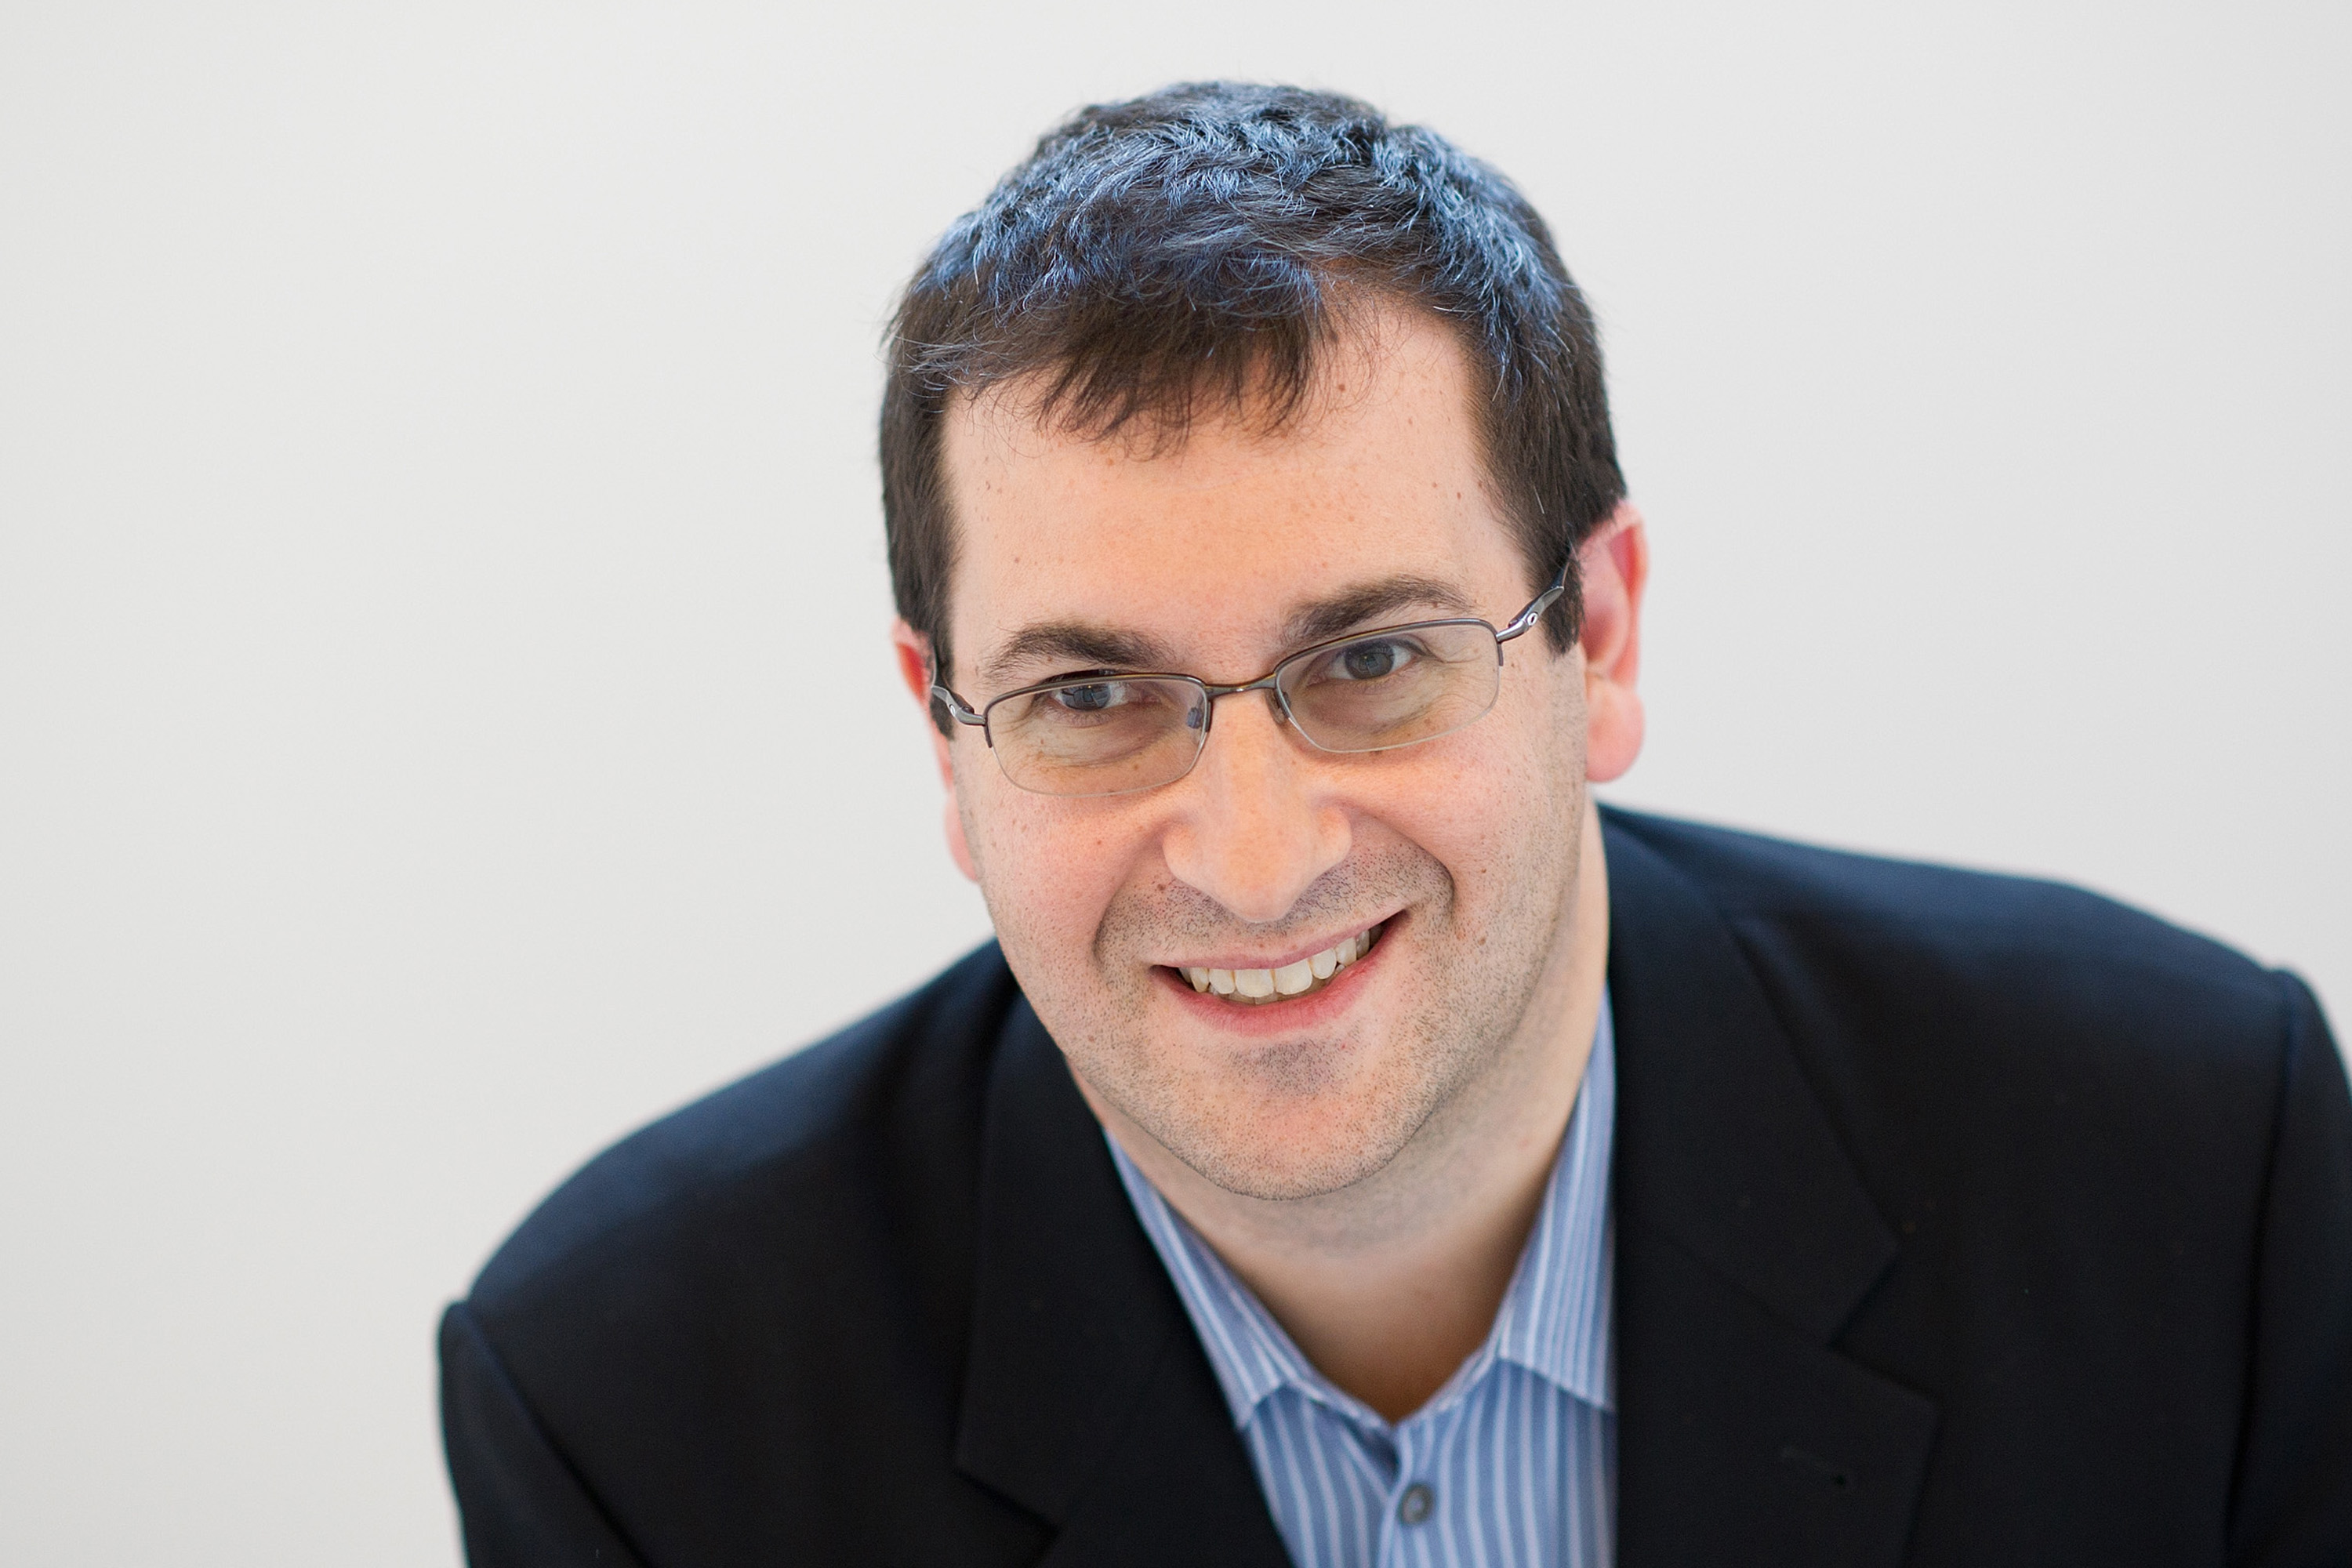 SurveyMonkey CEO David Goldberg Interview